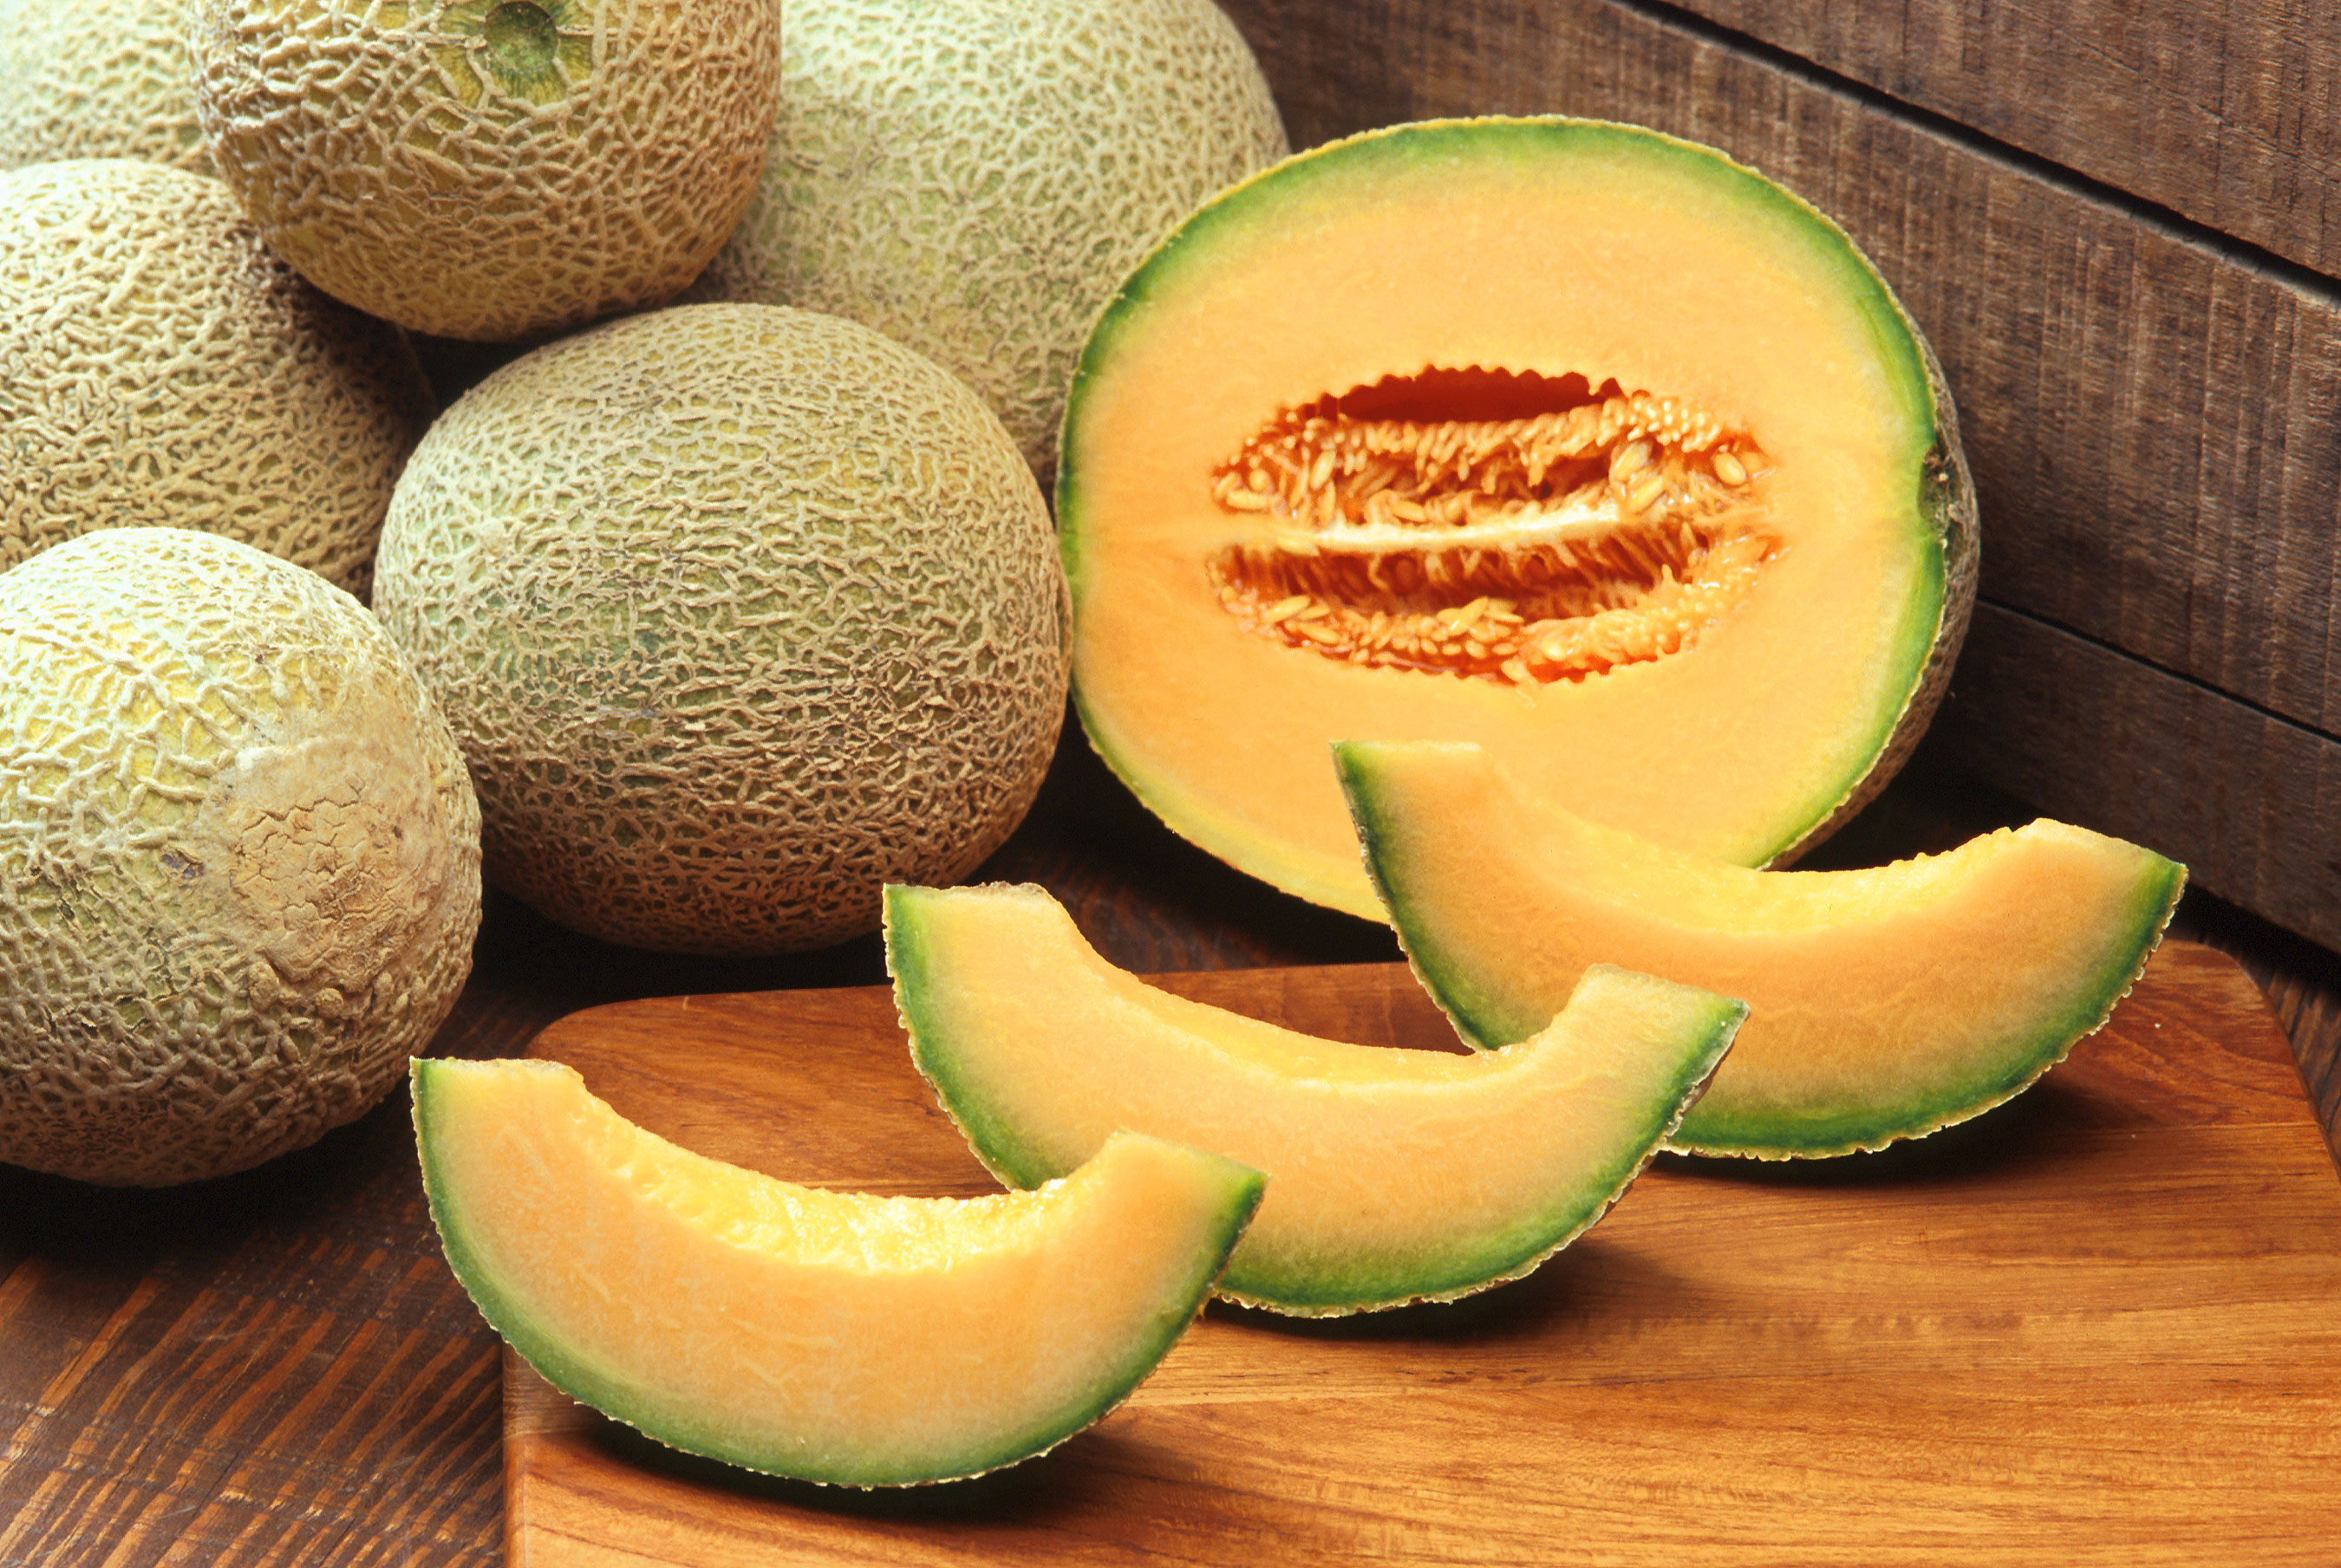 Honeydew melons play role in boosting brain health and more